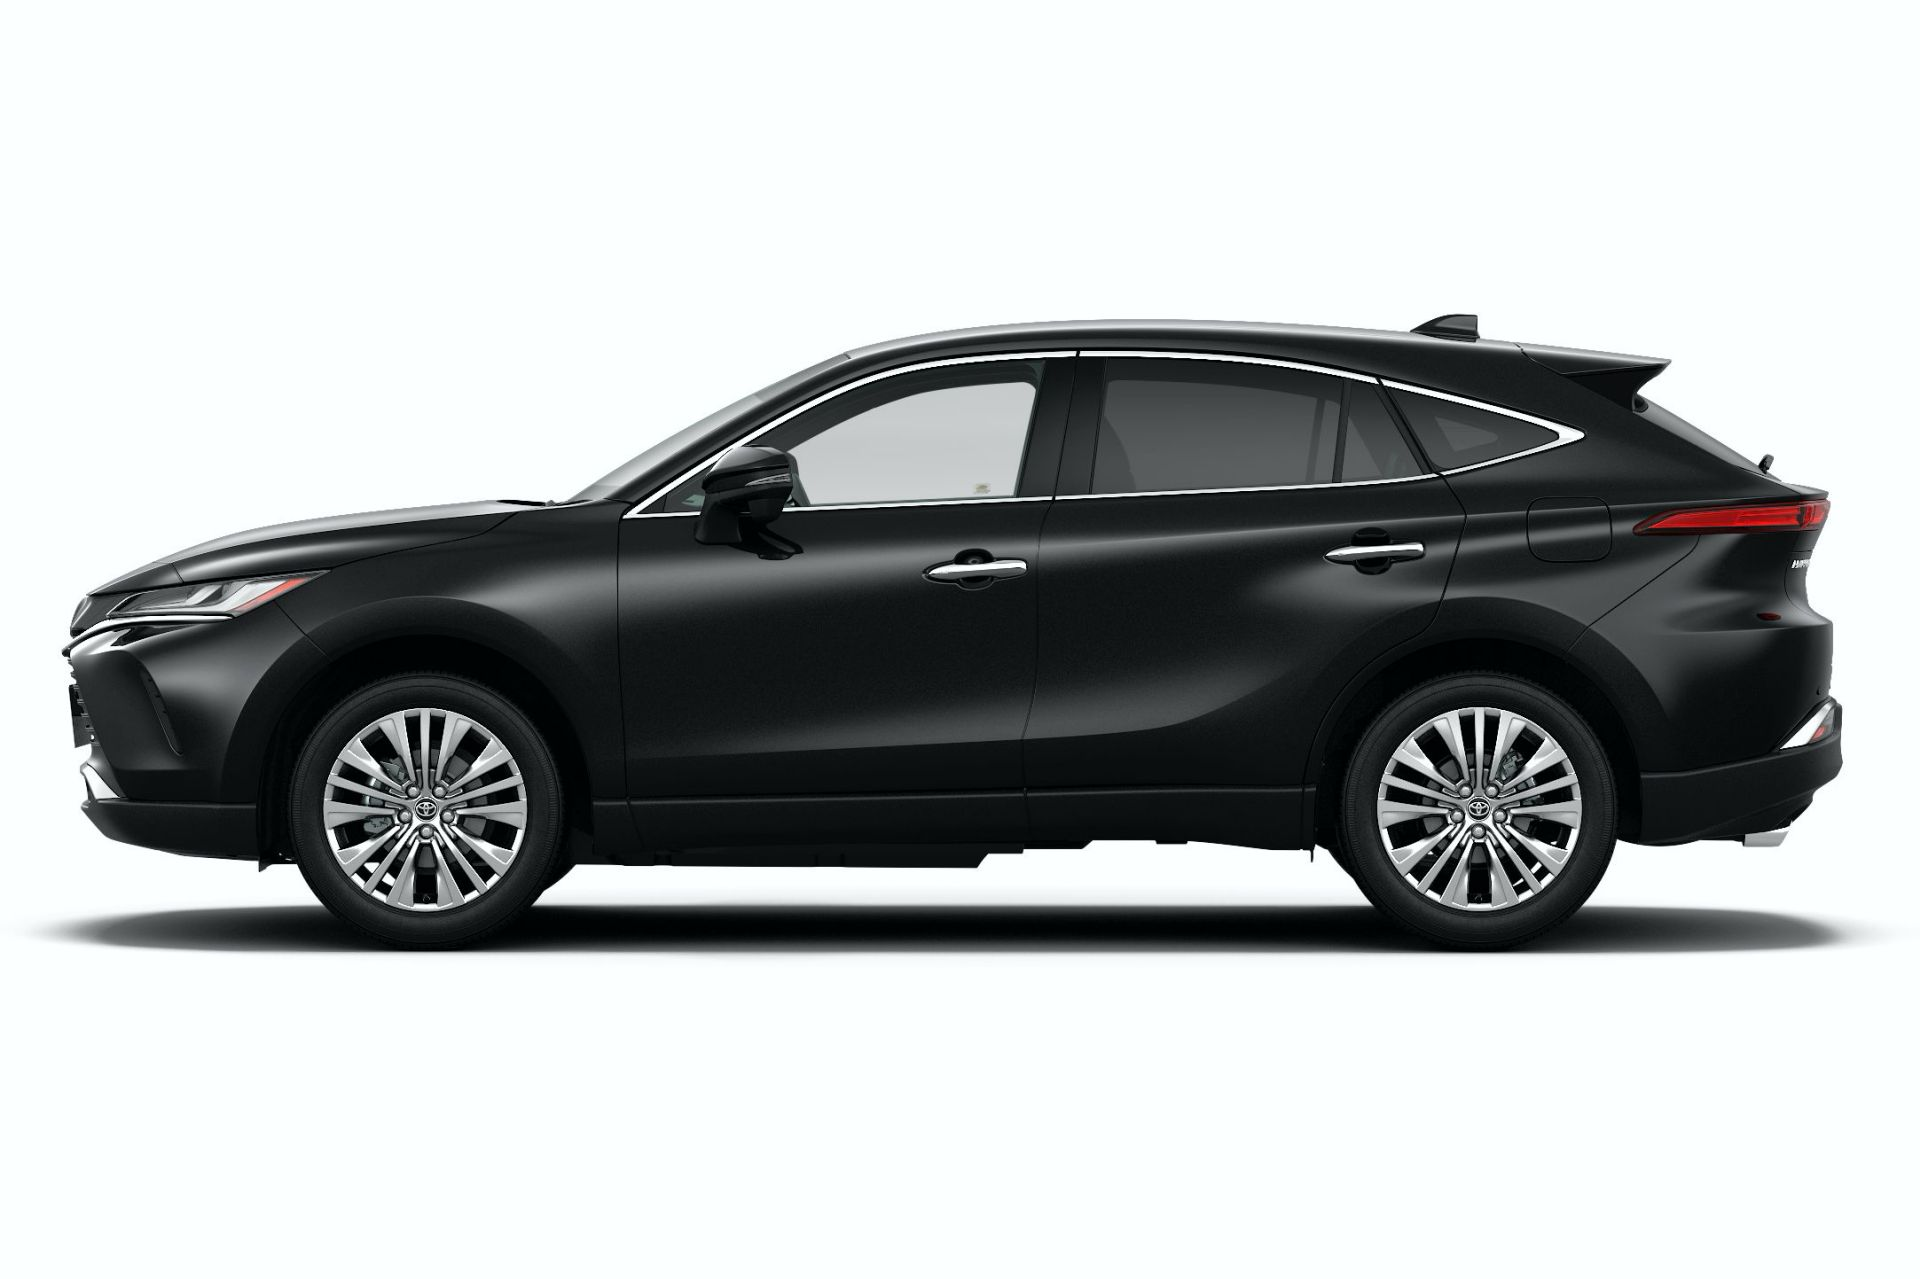 2020_Toyota_Harrier_0021